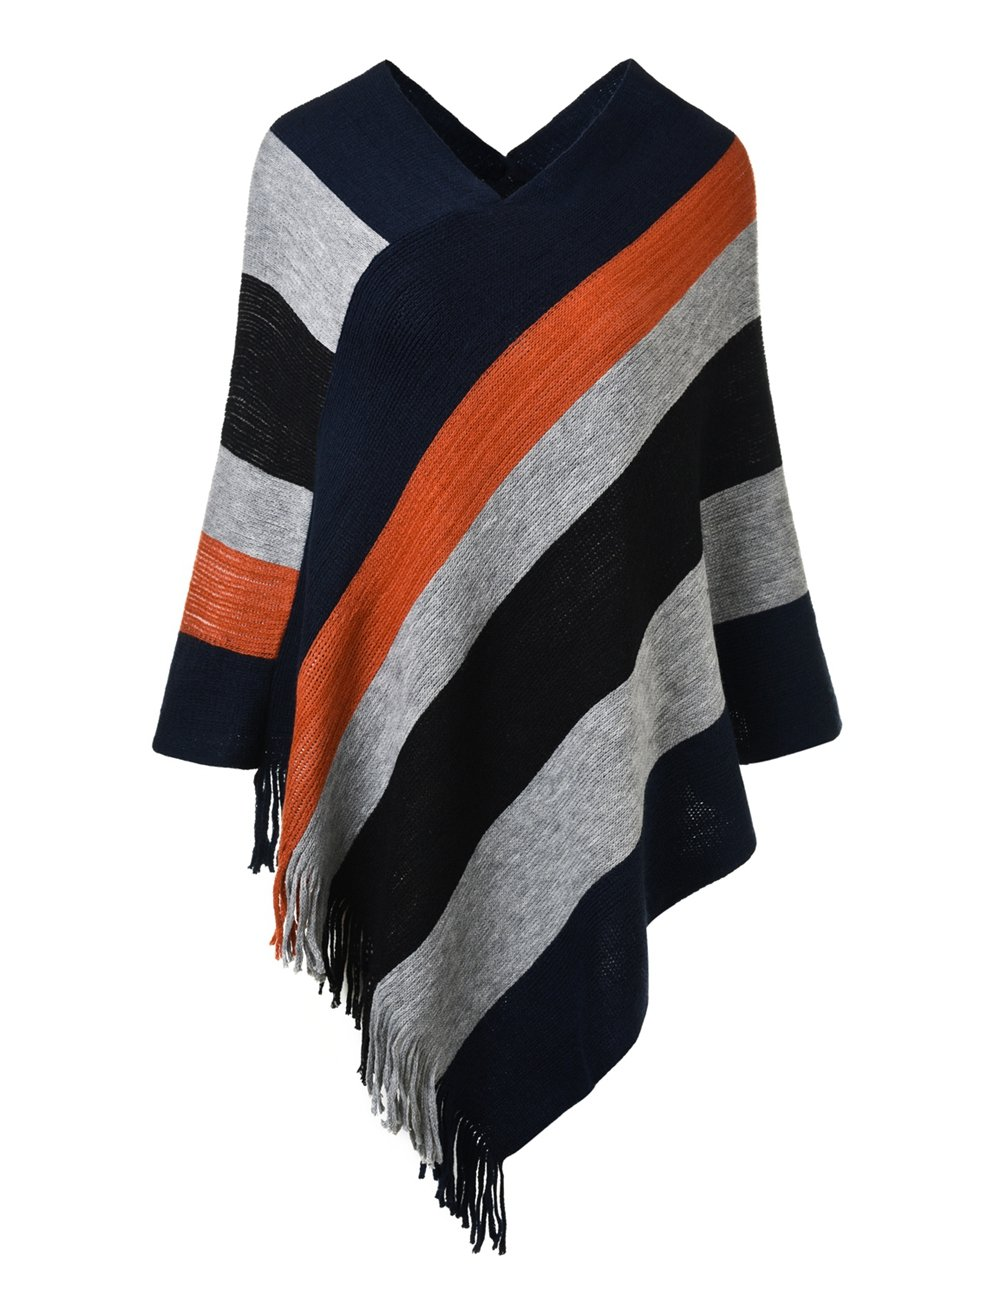 Ferand Women's Elegant Knitted Poncho Top with Stripe Patterns and Fringed Sides, Navy Blue & Black